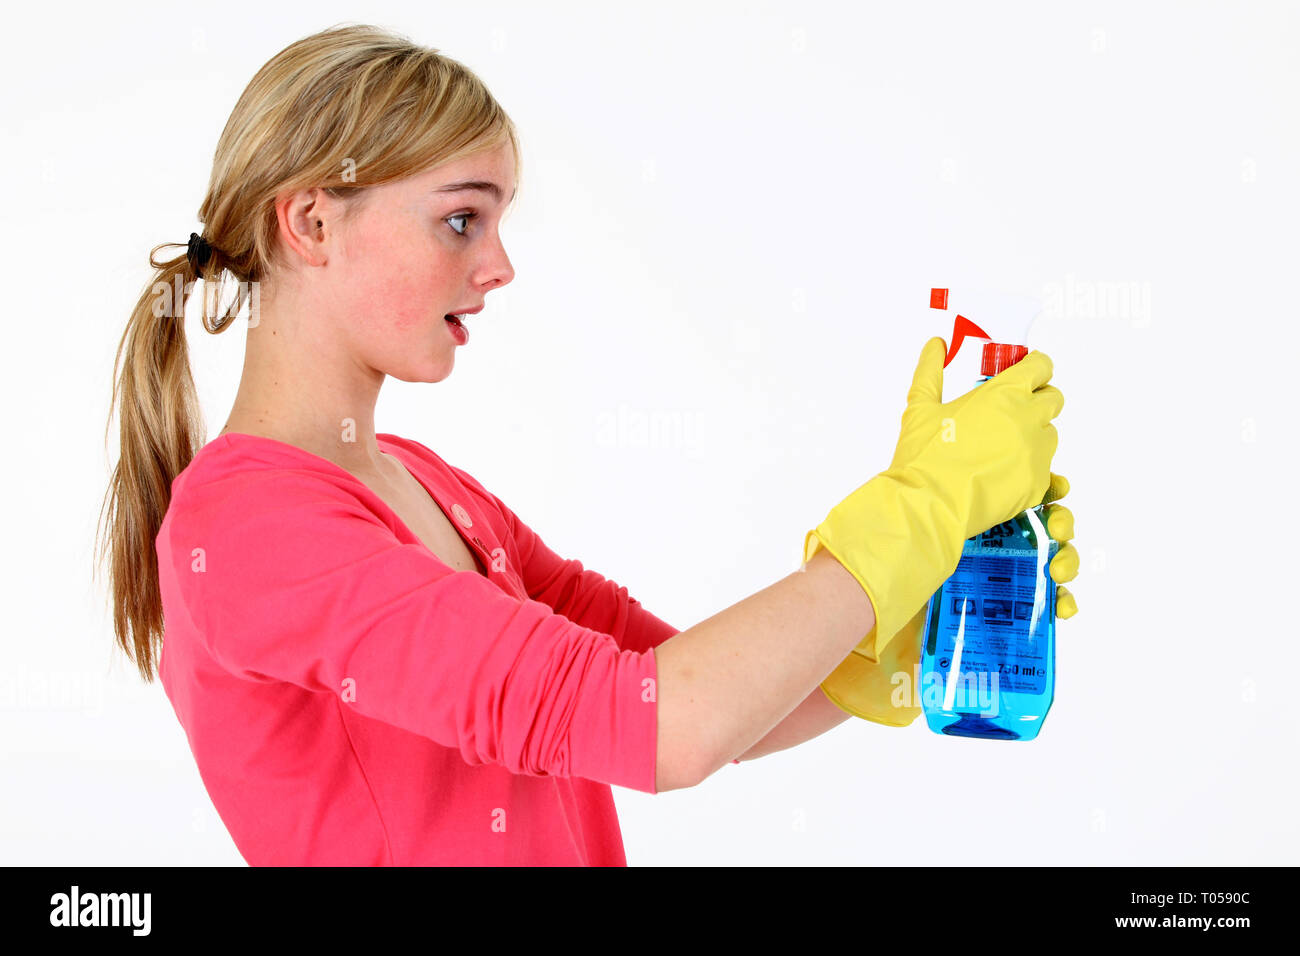 A young woman stares astonished at a spray bottle with cleaner. - Stock Image